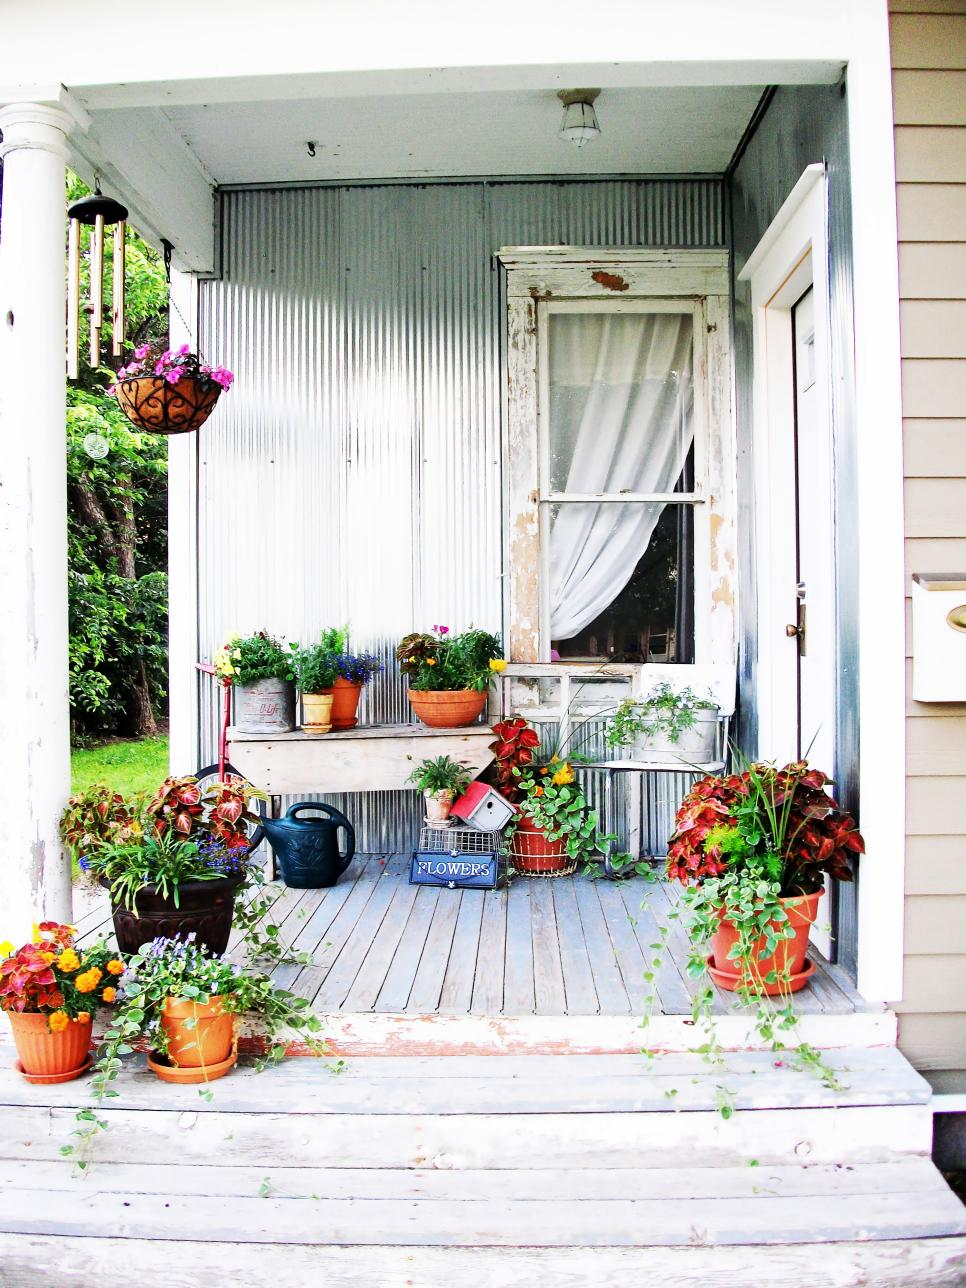 Shabby Chic Decorating Ideas For Porches And Gardens Hgtv: outdoor home design ideas